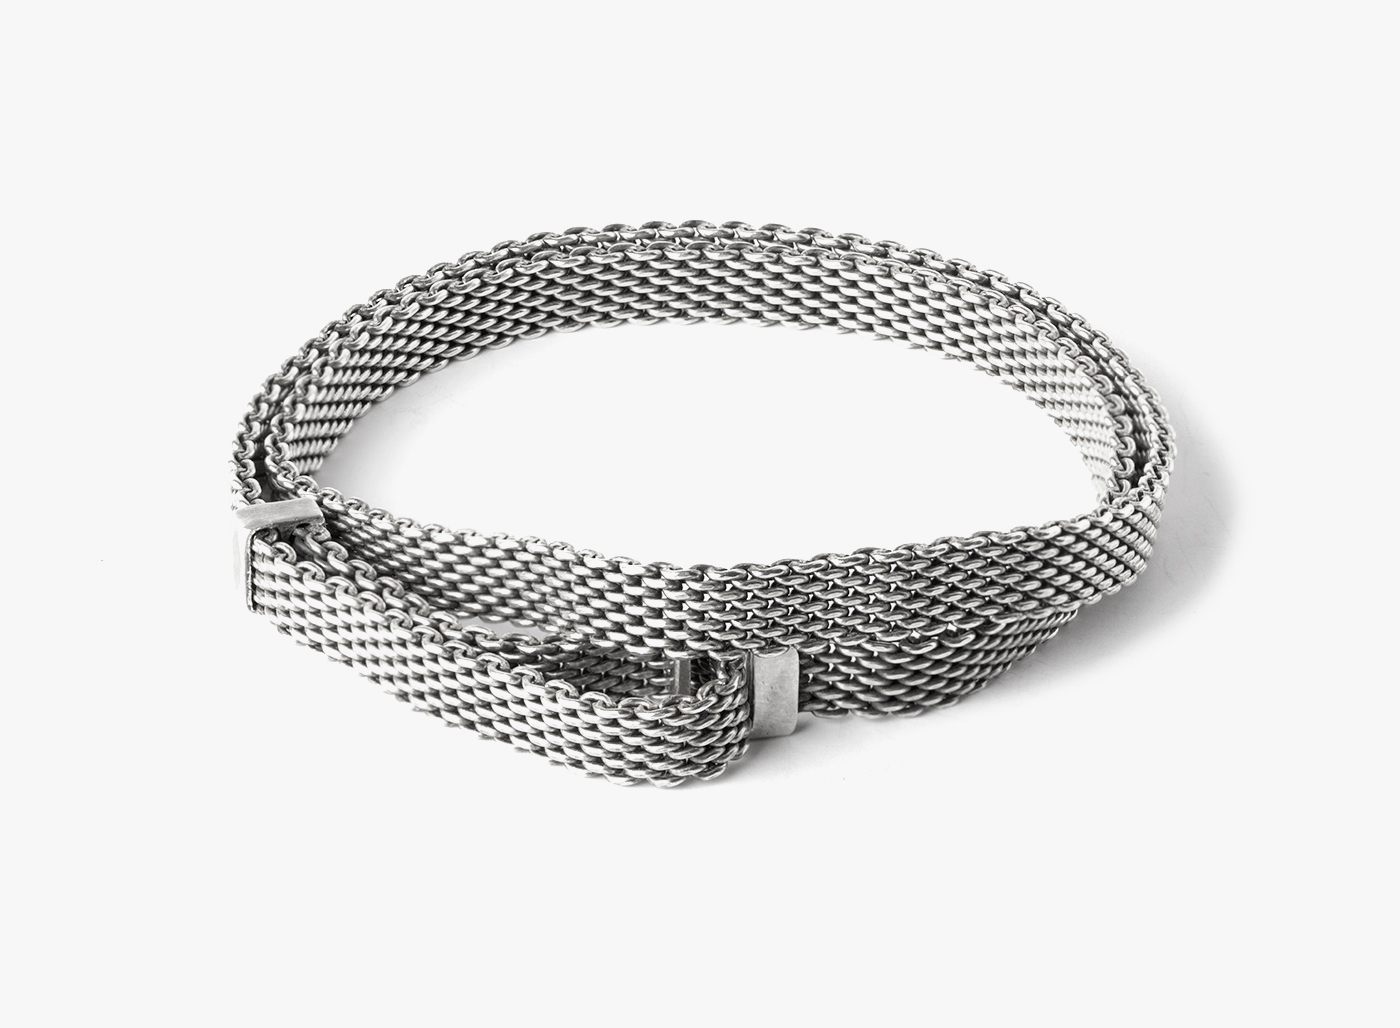 Image of Adjustable Medium Mesh Double Wrap Bracelet